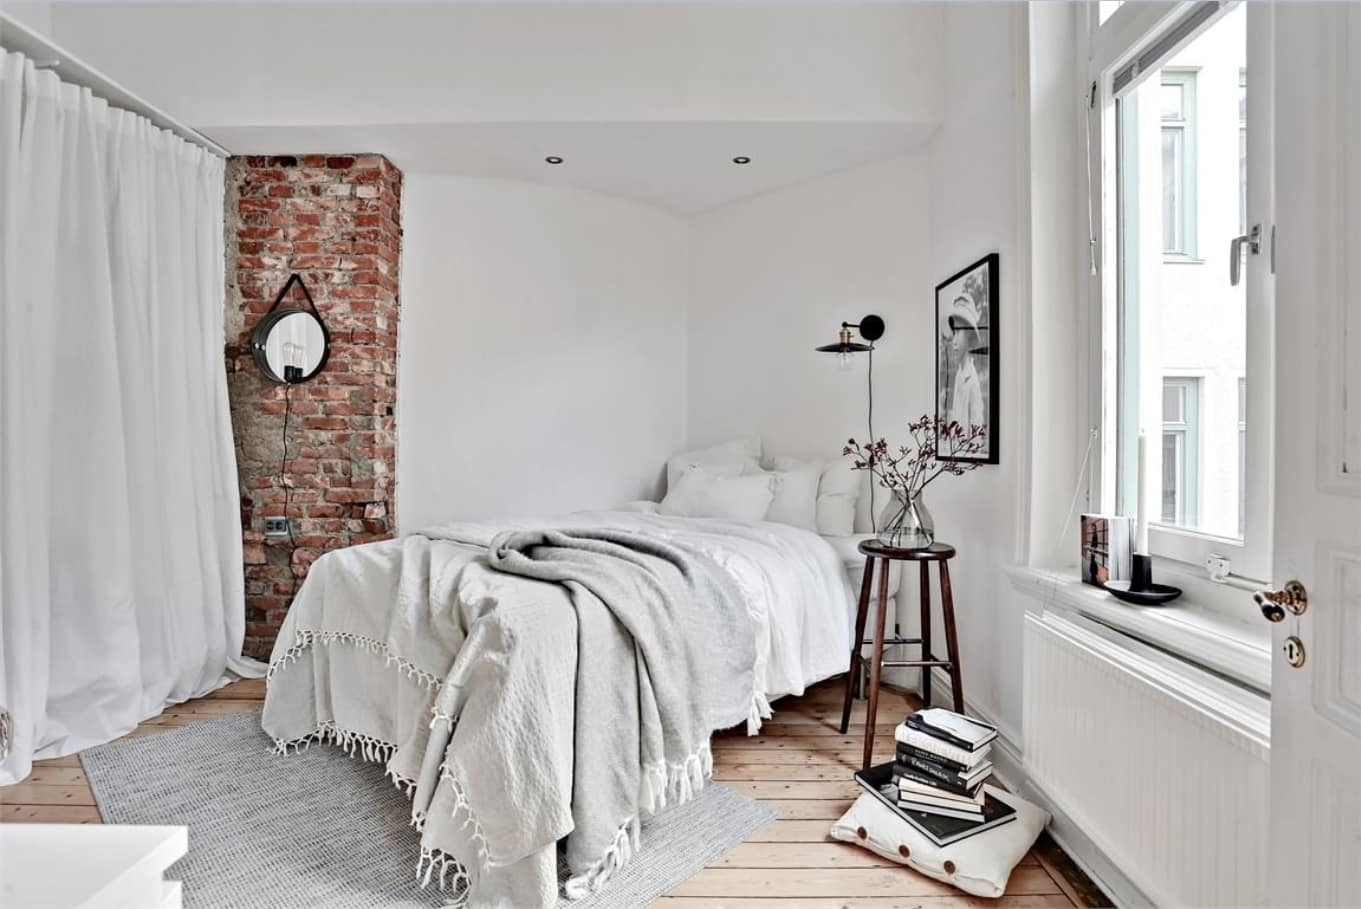 Exposed brickwork as the accent in the Nordic styled bedroom